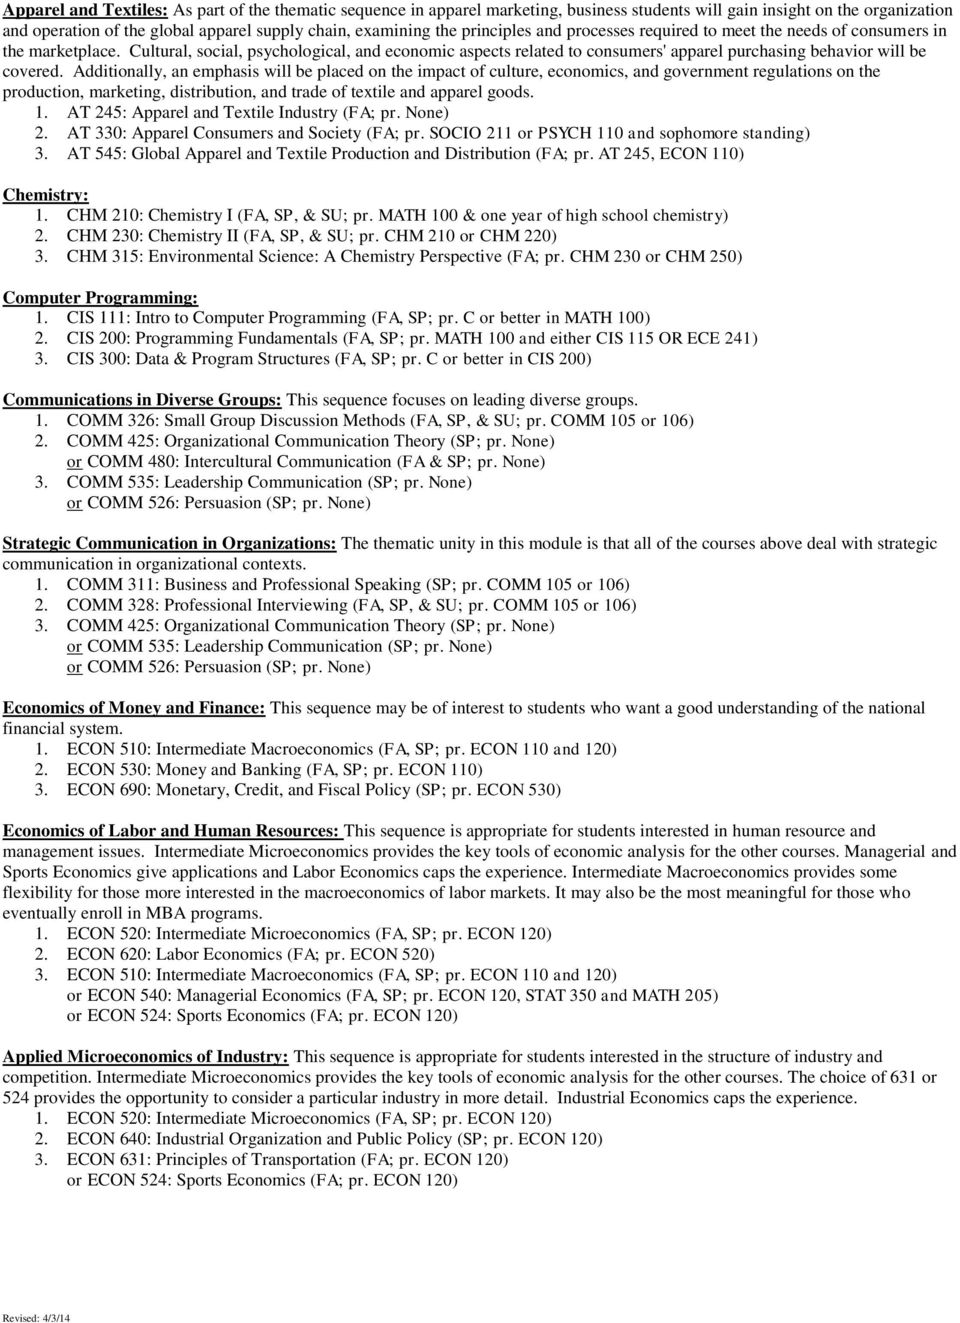 THEMATIC SEQUENCES (DETAILED) College of Business Administration - PDF